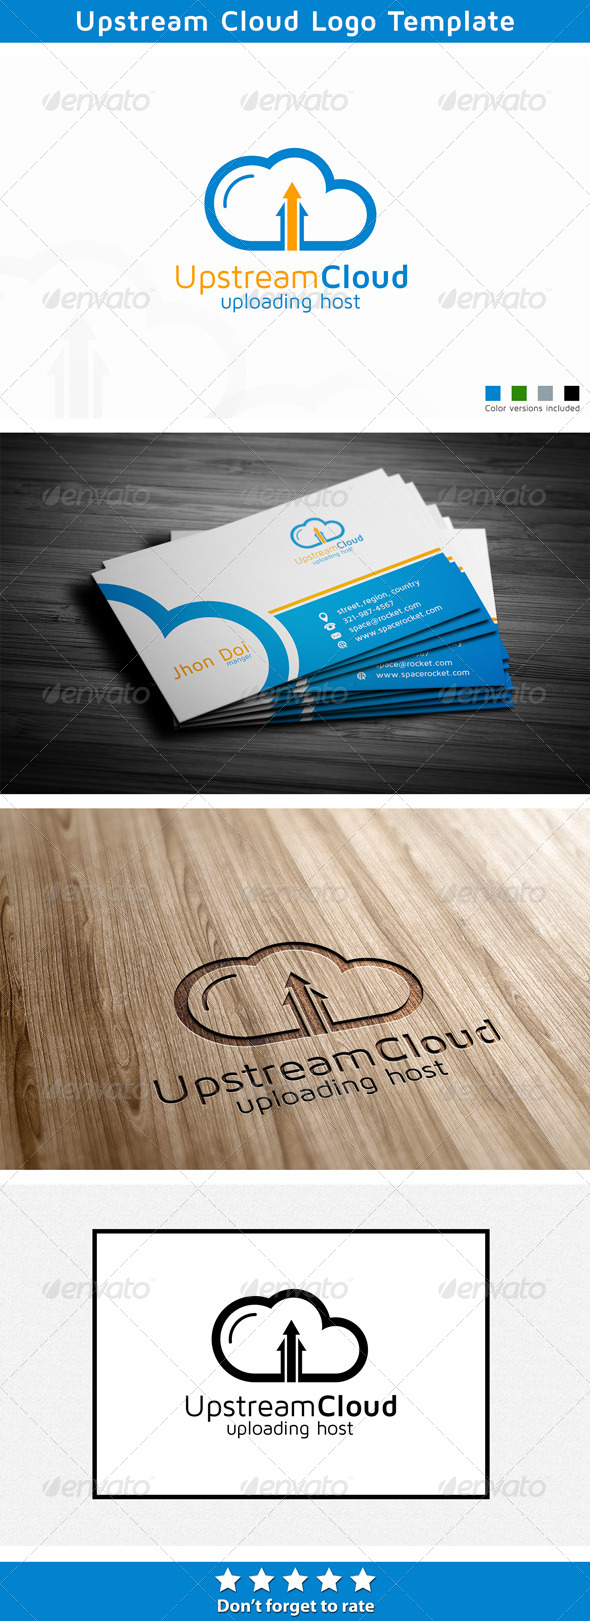 Upstream Cloud - Symbols Logo Templates